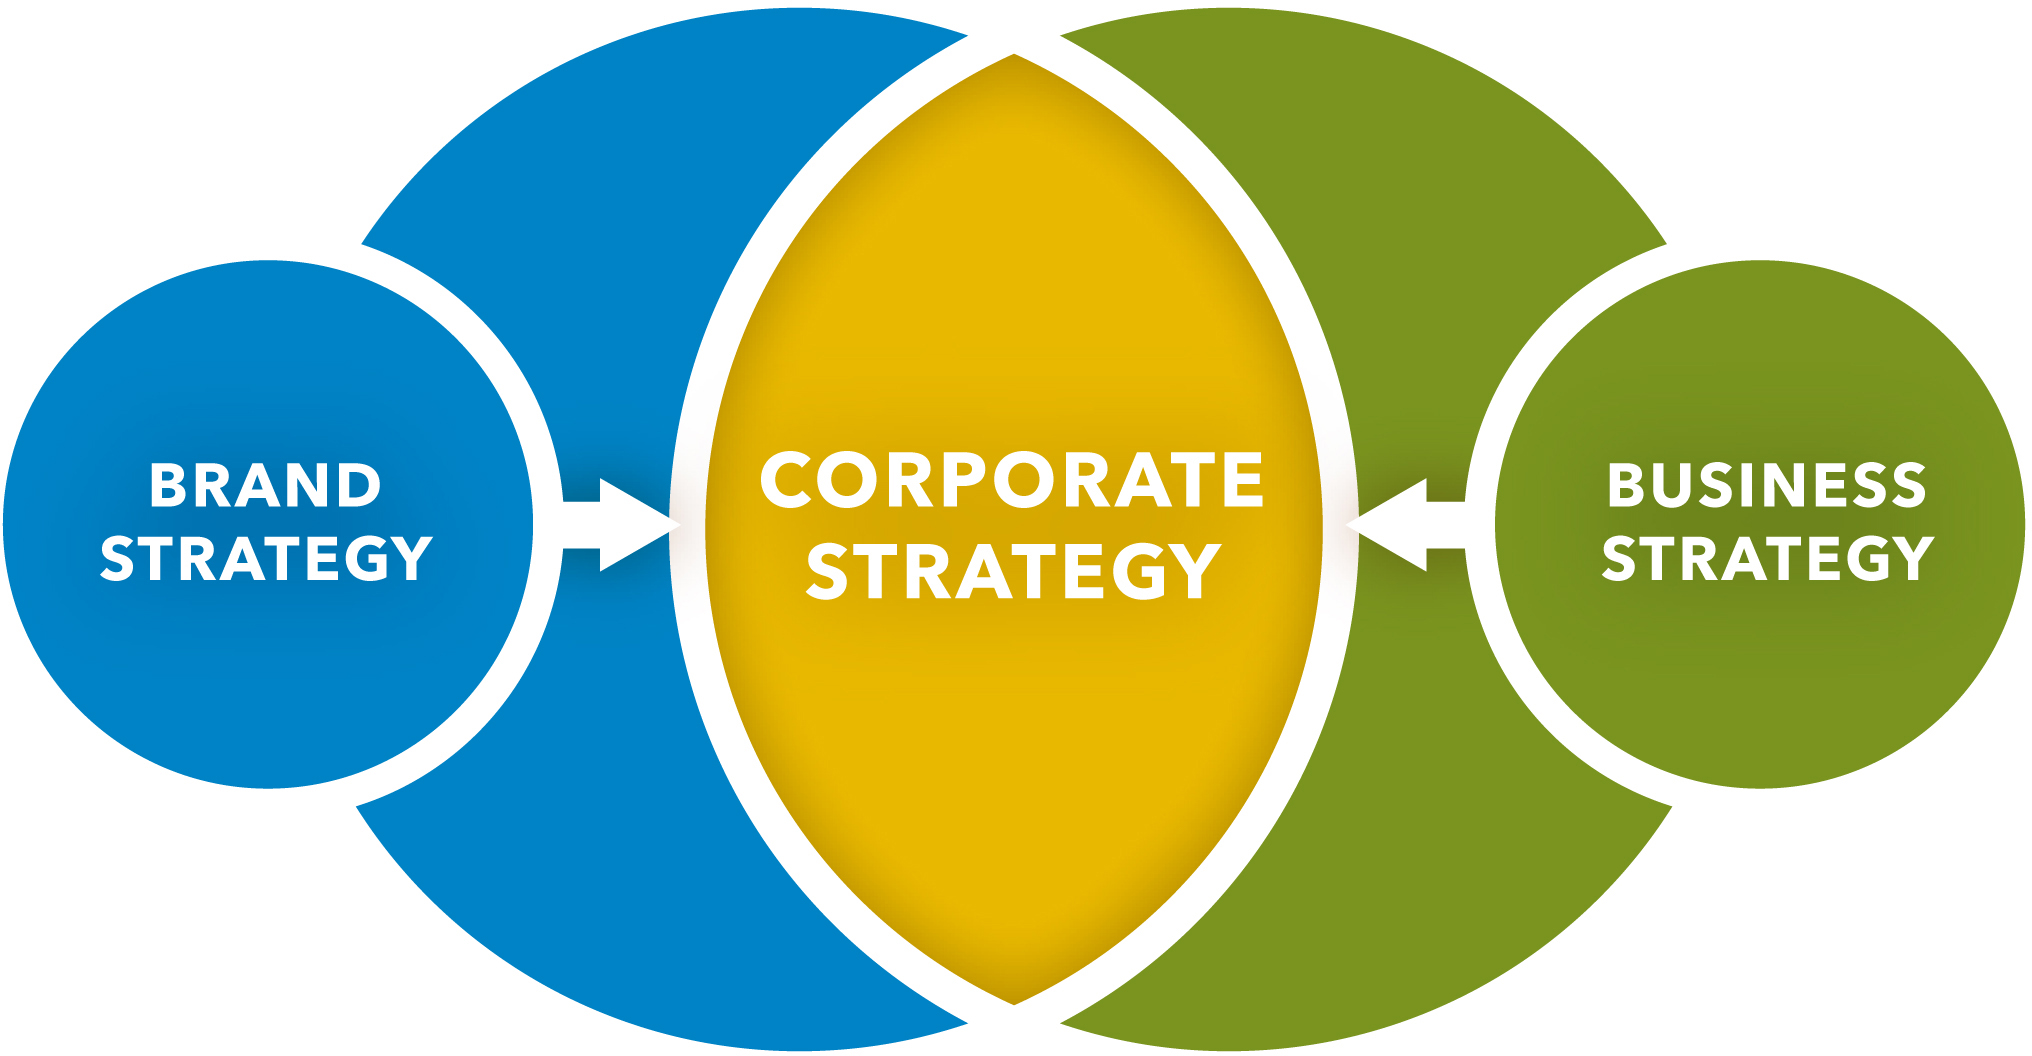 - Aligning your brand and business strategies creates a corporate strategy that drives growth.